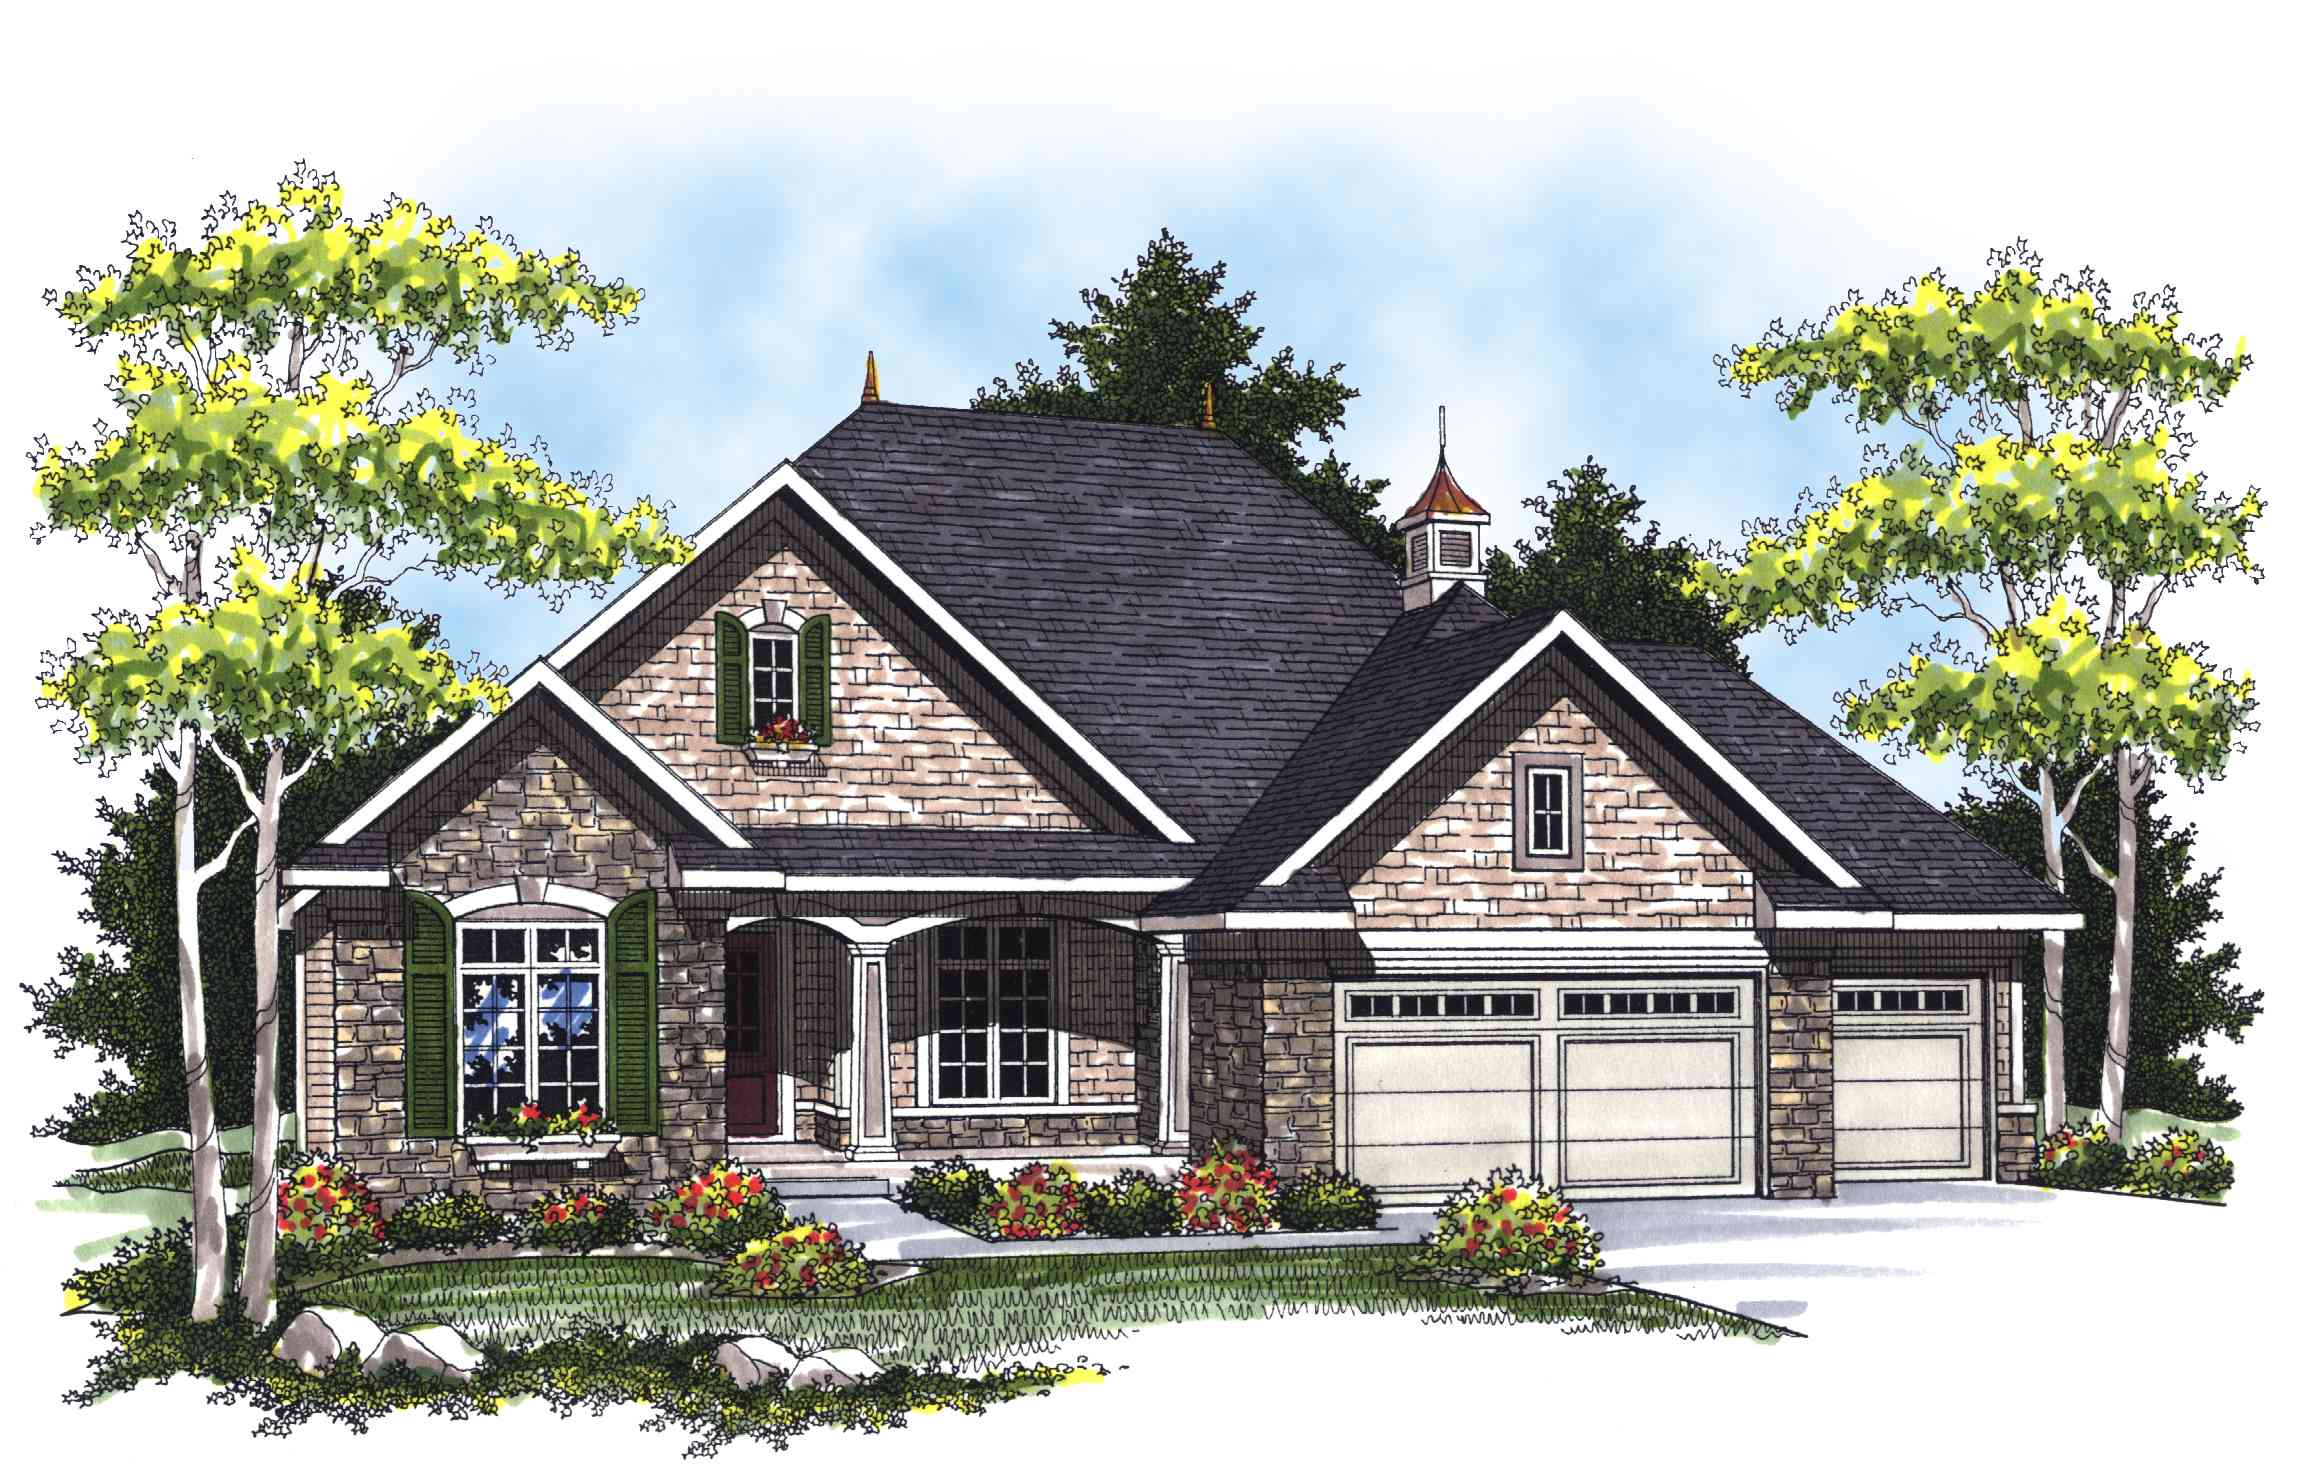 Country french ranch home plan 89265ah architectural for French country ranch home plans